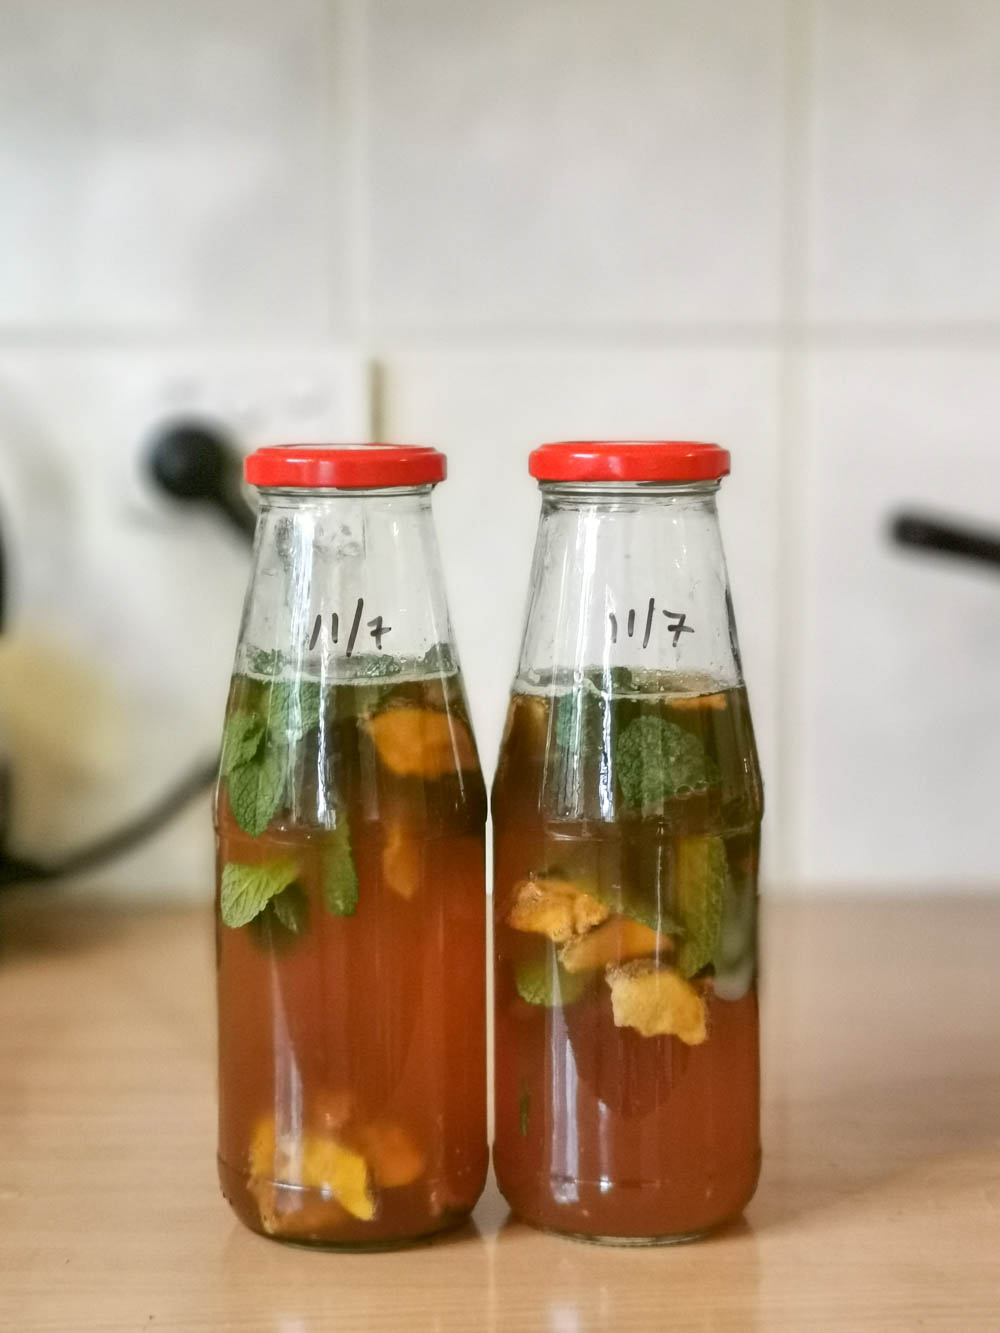 Mint and galangal kombucha brewing.